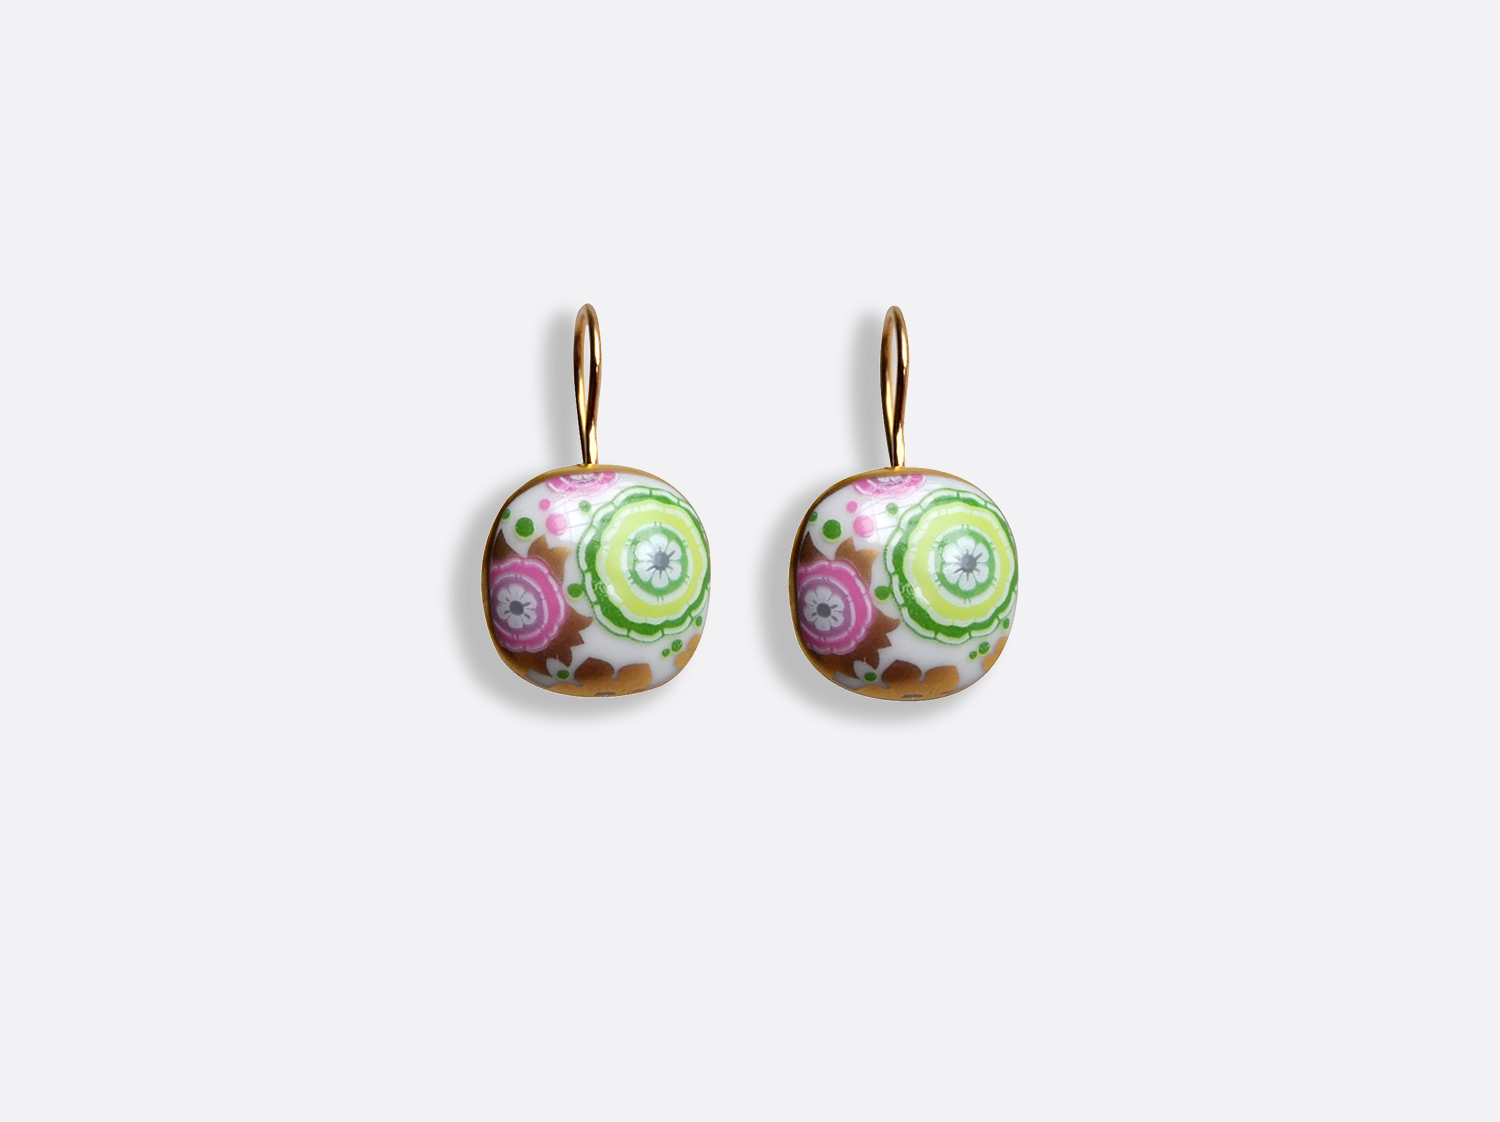 Boucles d'oreilles en porcelaine de la collection Syracuse vert Bernardaud